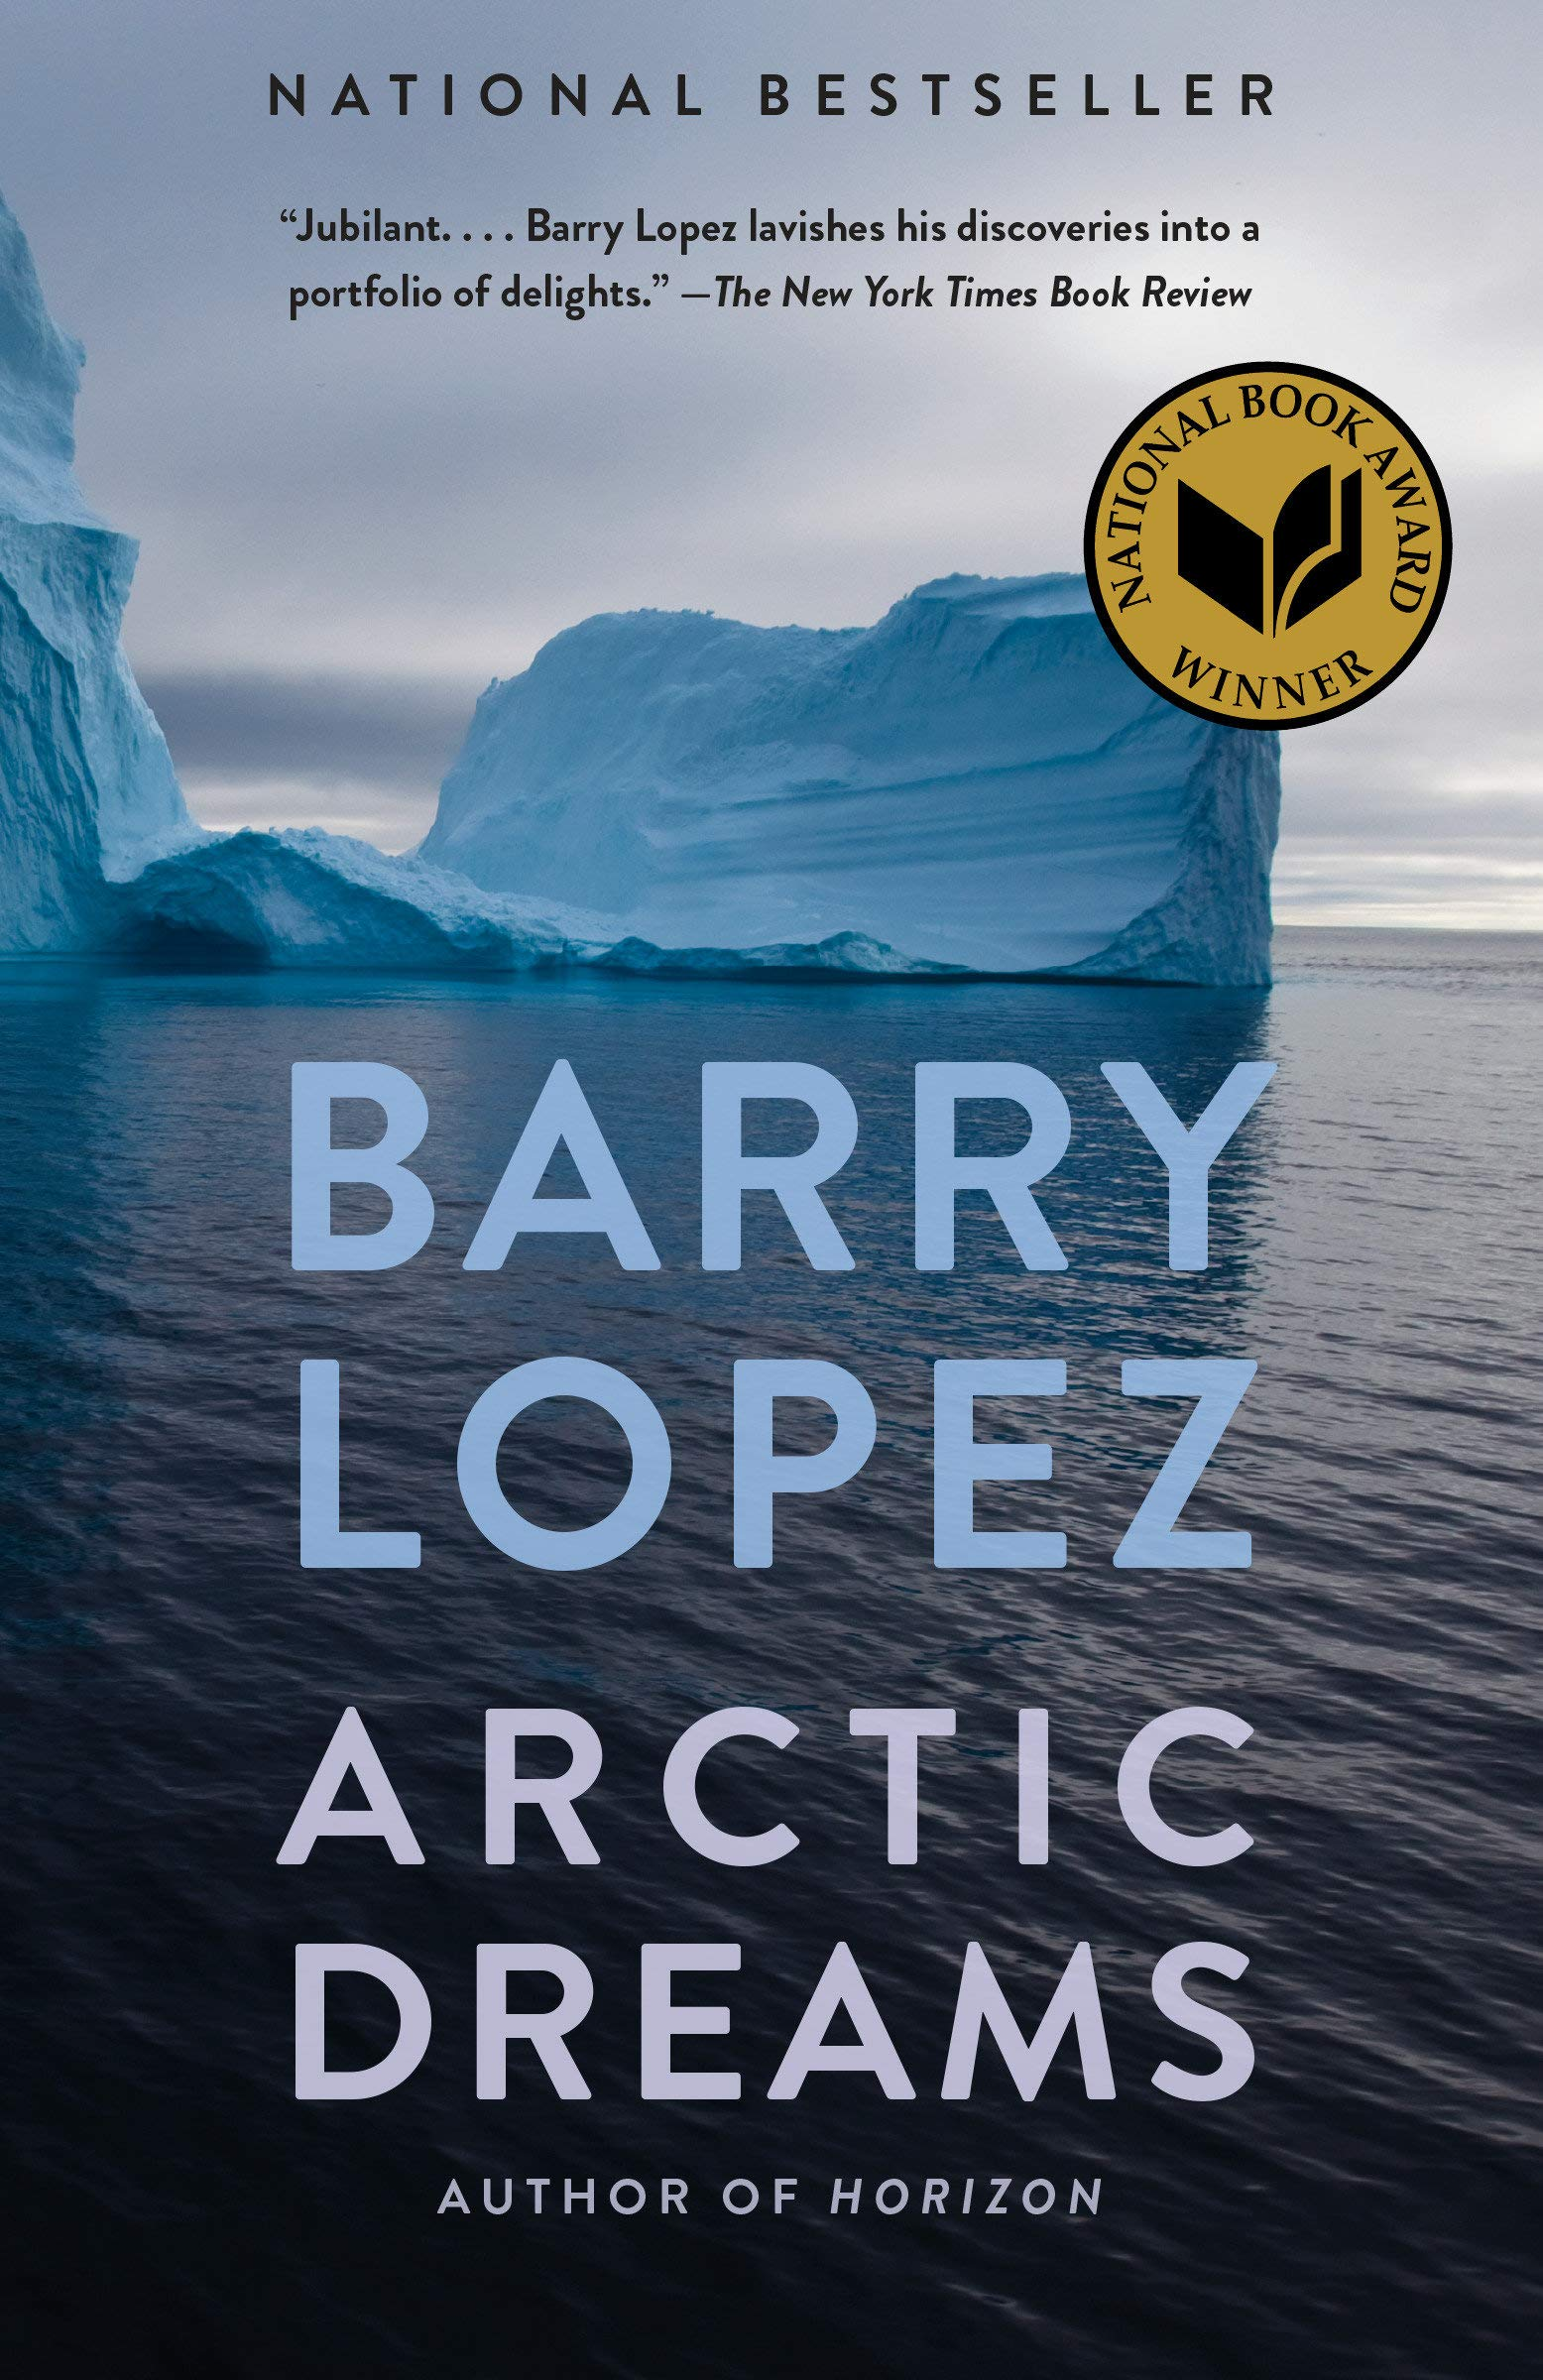 Barry Lopez: Arctic Dreams - photo by Dave Walsh